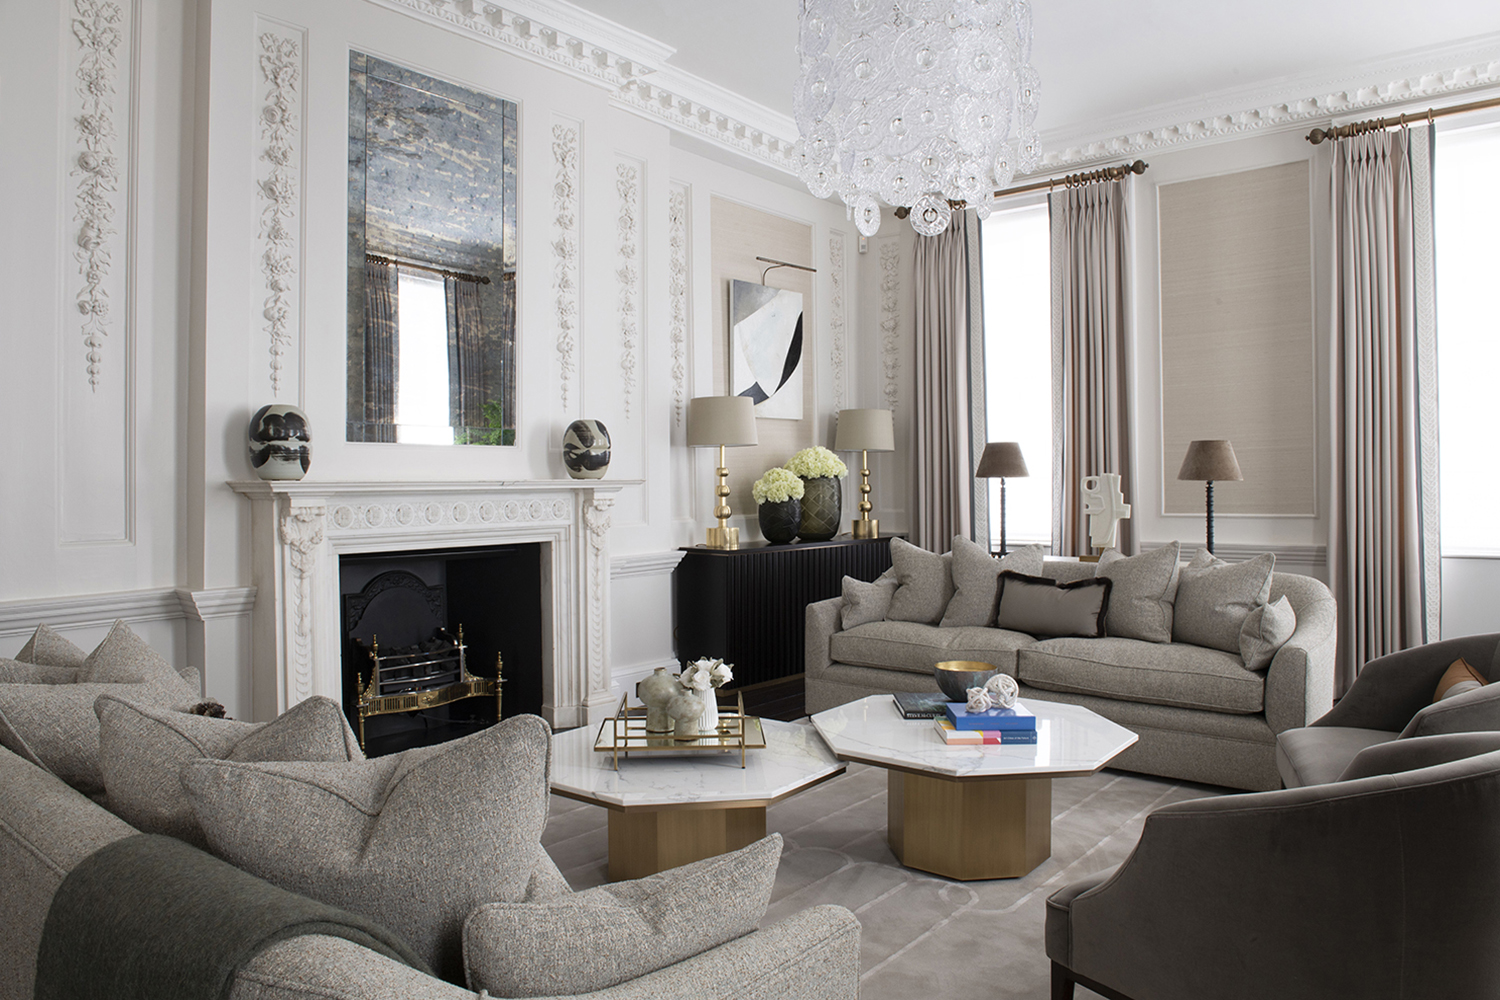 BESPOKE LIVING ROOM RUG_Interior Design by Schiller Beynon_Photography by Jody Stewart